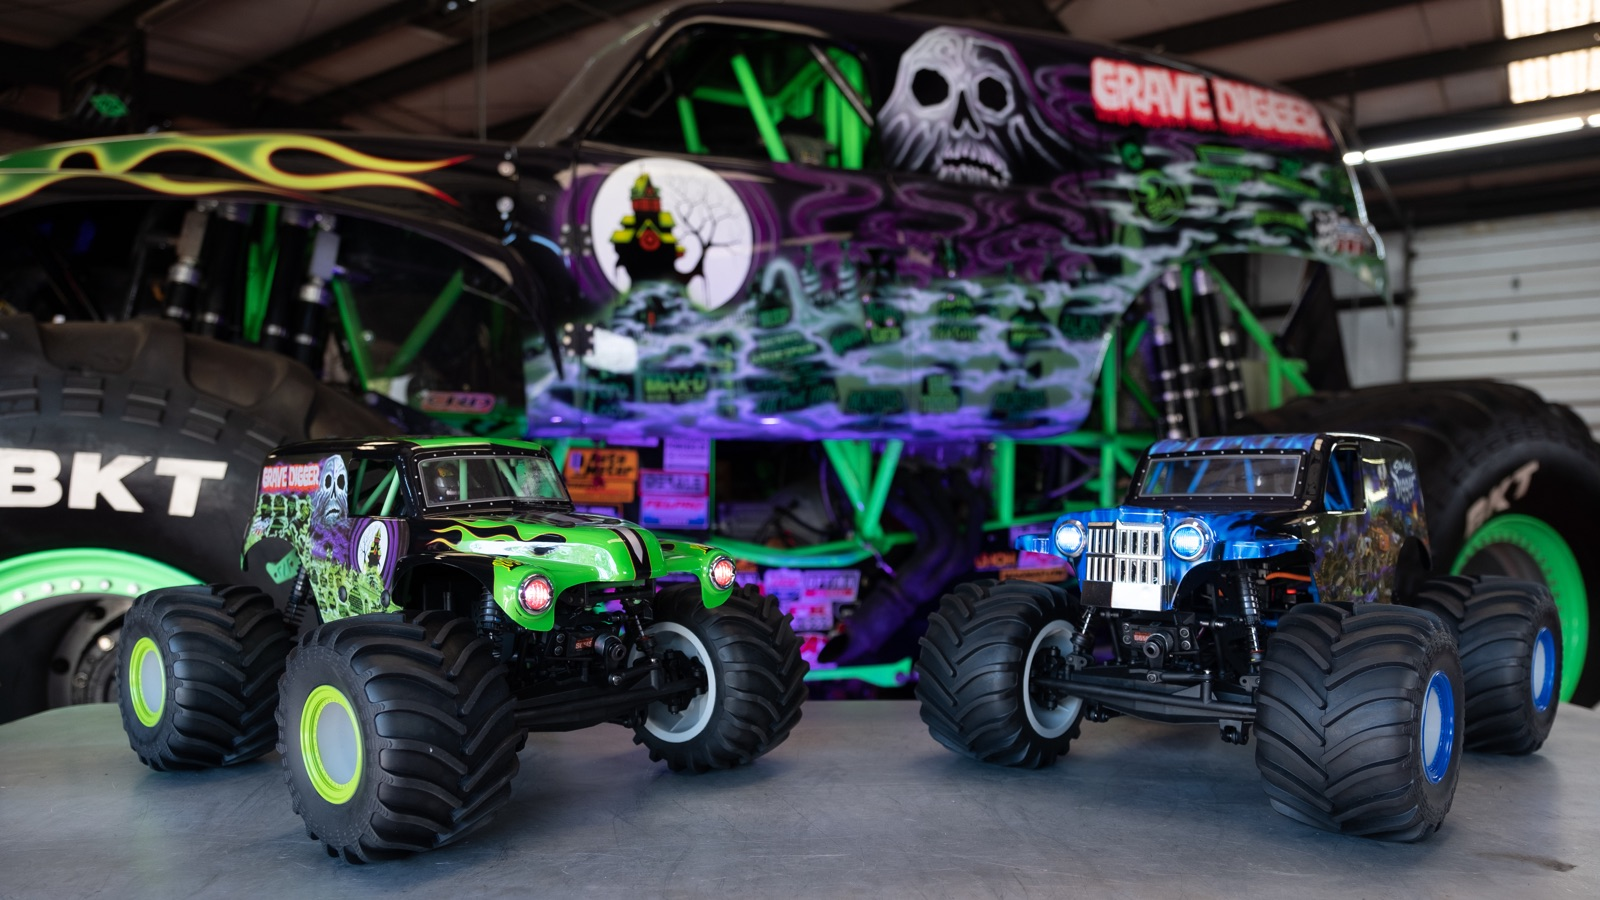 Grave Digger and Son-Uva Digger R/C MONSTER TRUCKS